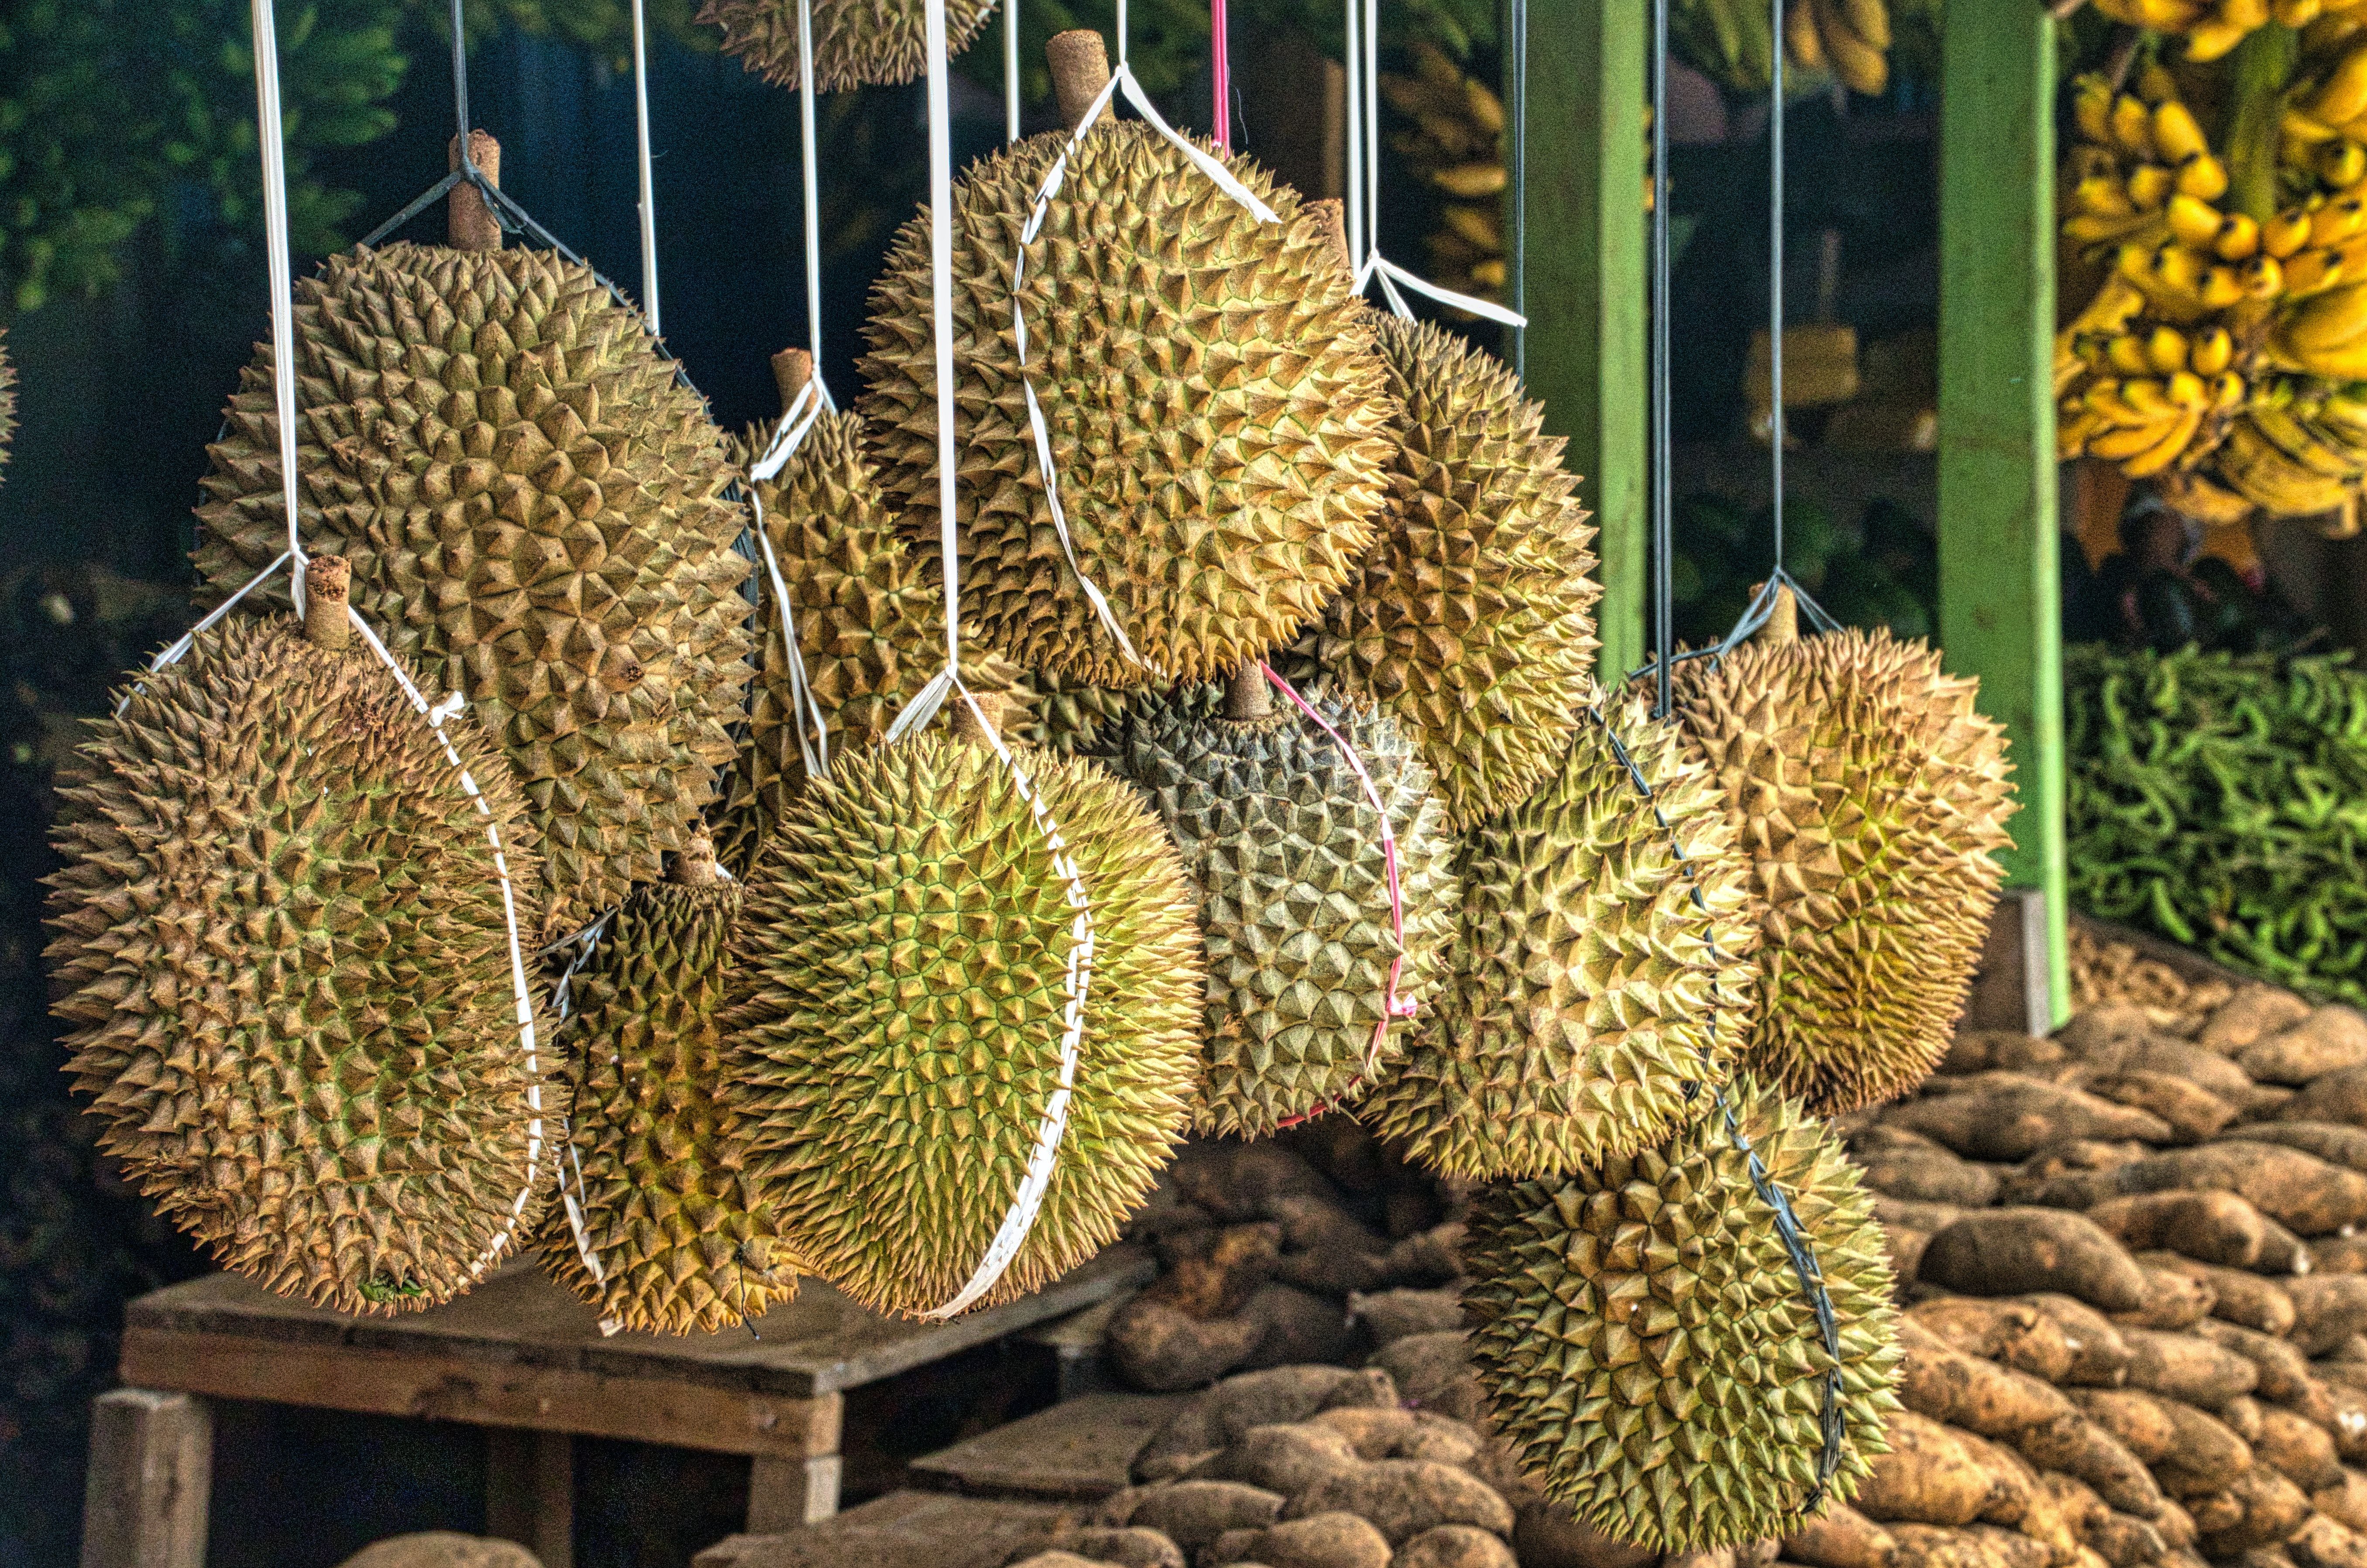 green and brown round fruits 3888735 - Thai durians trigger evacuation of post office in German town